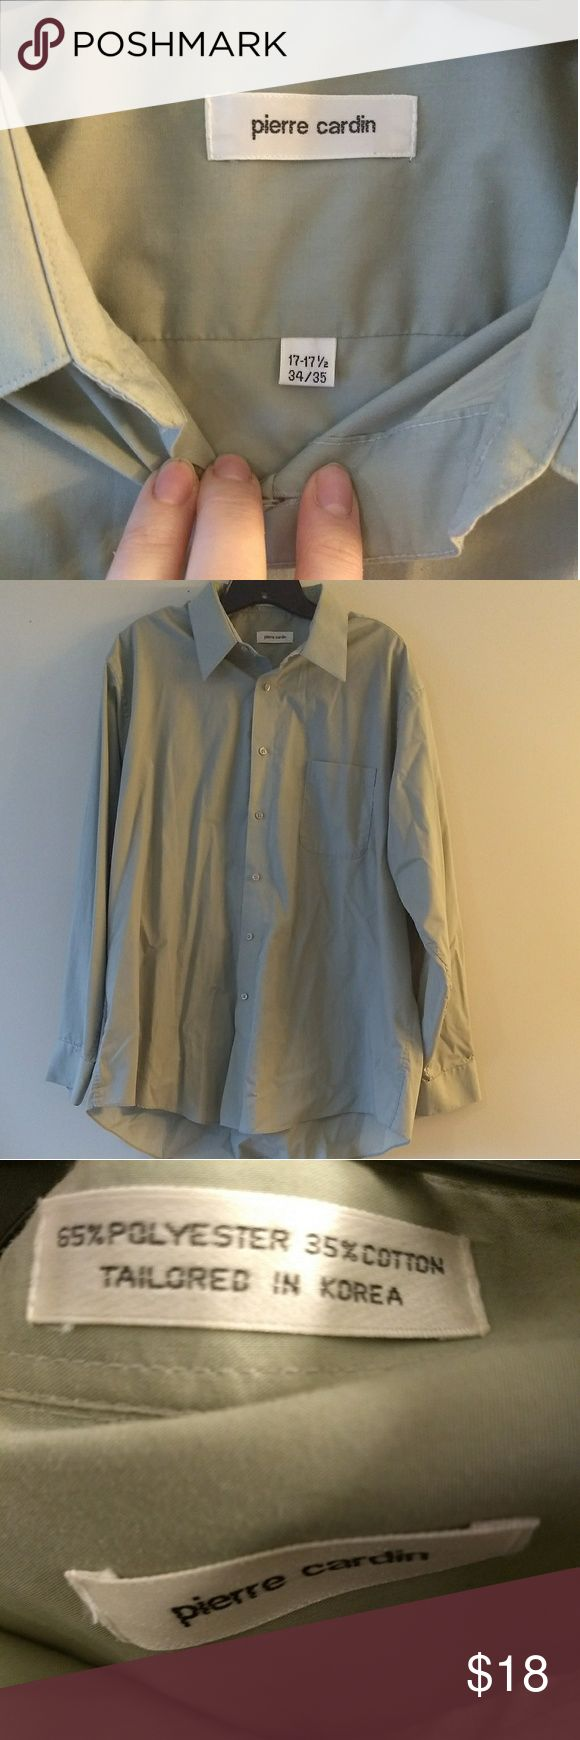 Men's Pierre Cardin seafoam green dress shirt Men's Pierre Cardin seafoam green dress shirt.  Measures 17-17.5 in the neck and 34-35 for the sleeves.  Excellent used condition. Pierre Cardin Shirts Dress Shirts